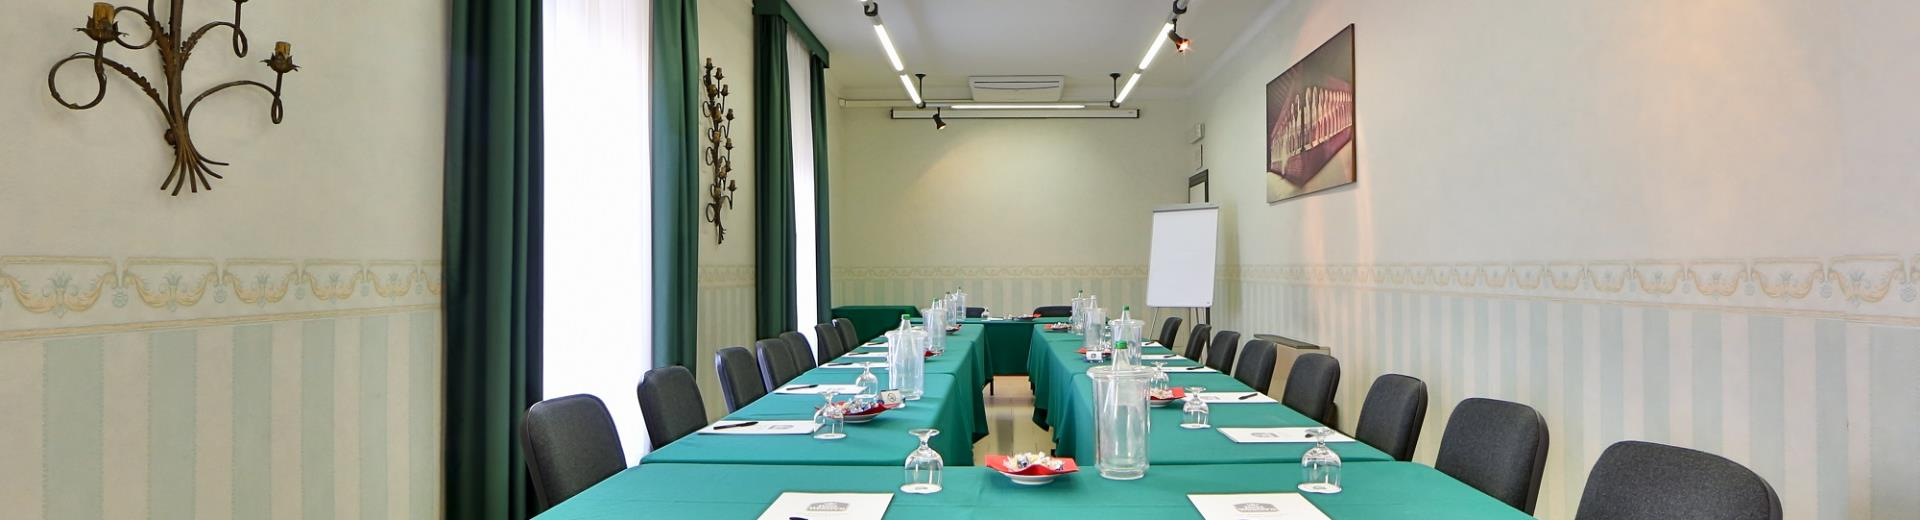 Sale per meeting e riunioni a Bologna all''Hotel San Donato